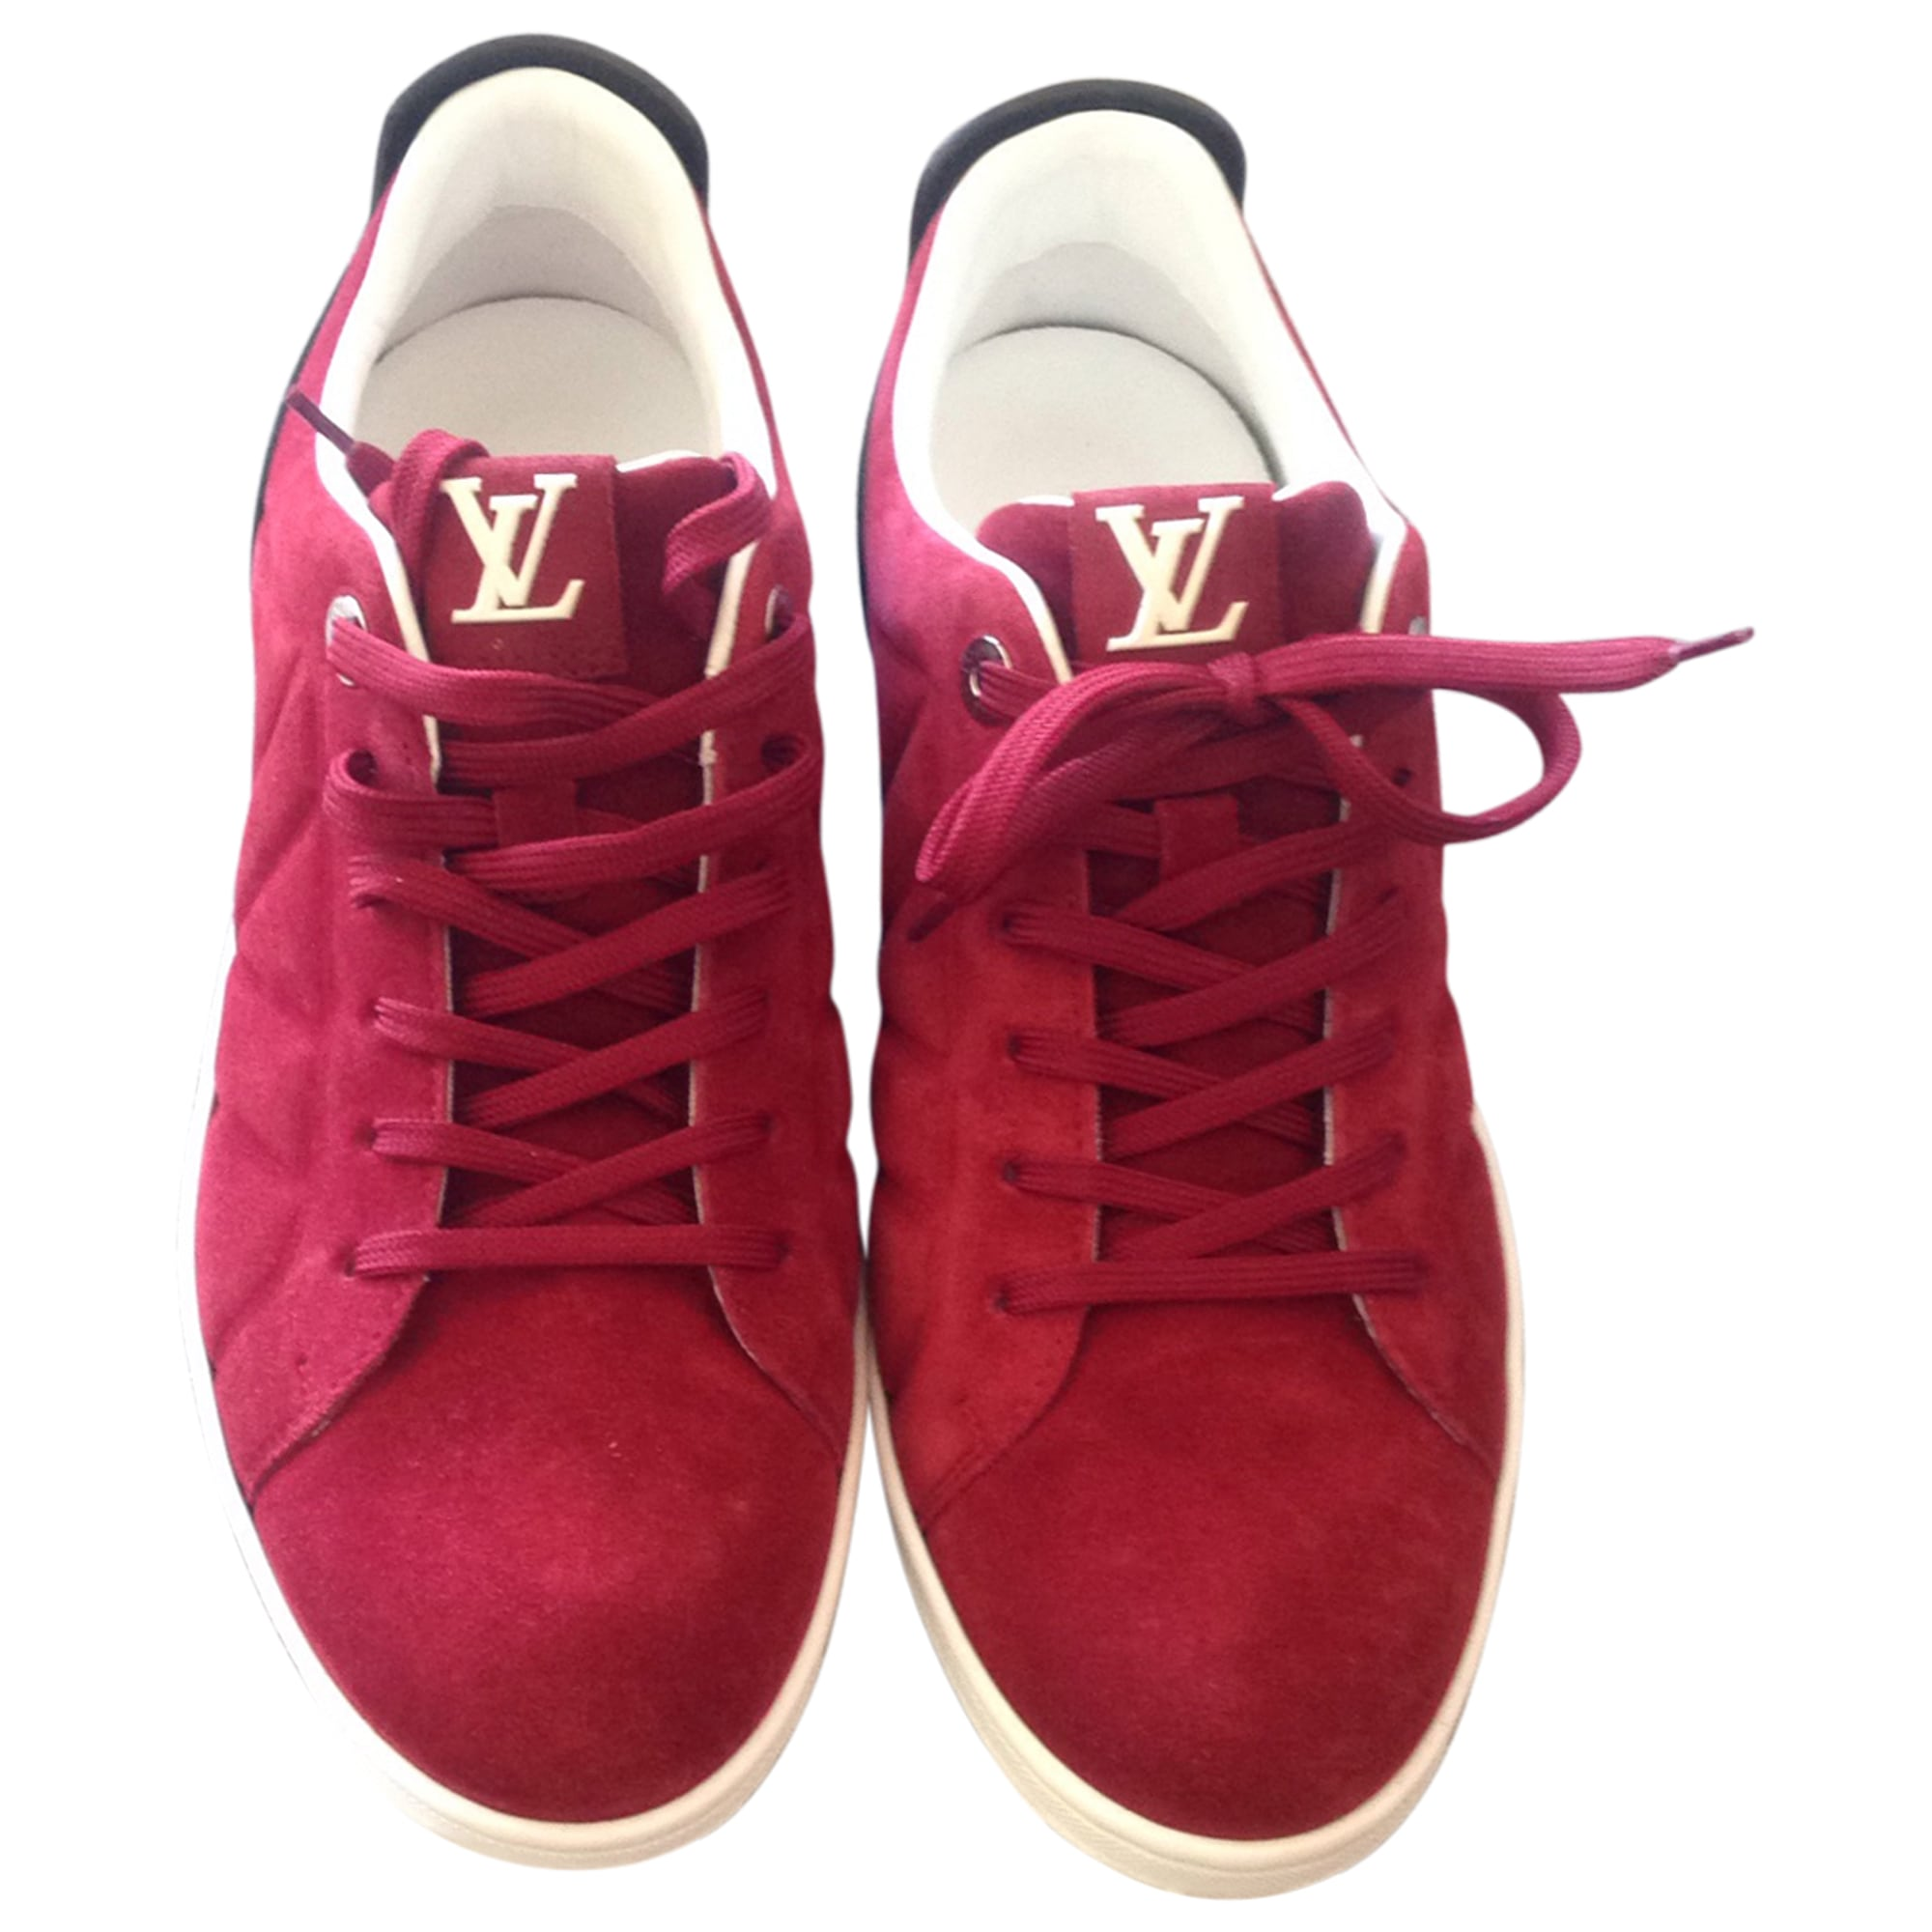 Baskets LOUIS VUITTON 40,5 rouge vendu par Linezoline - 4269059 90e36273972